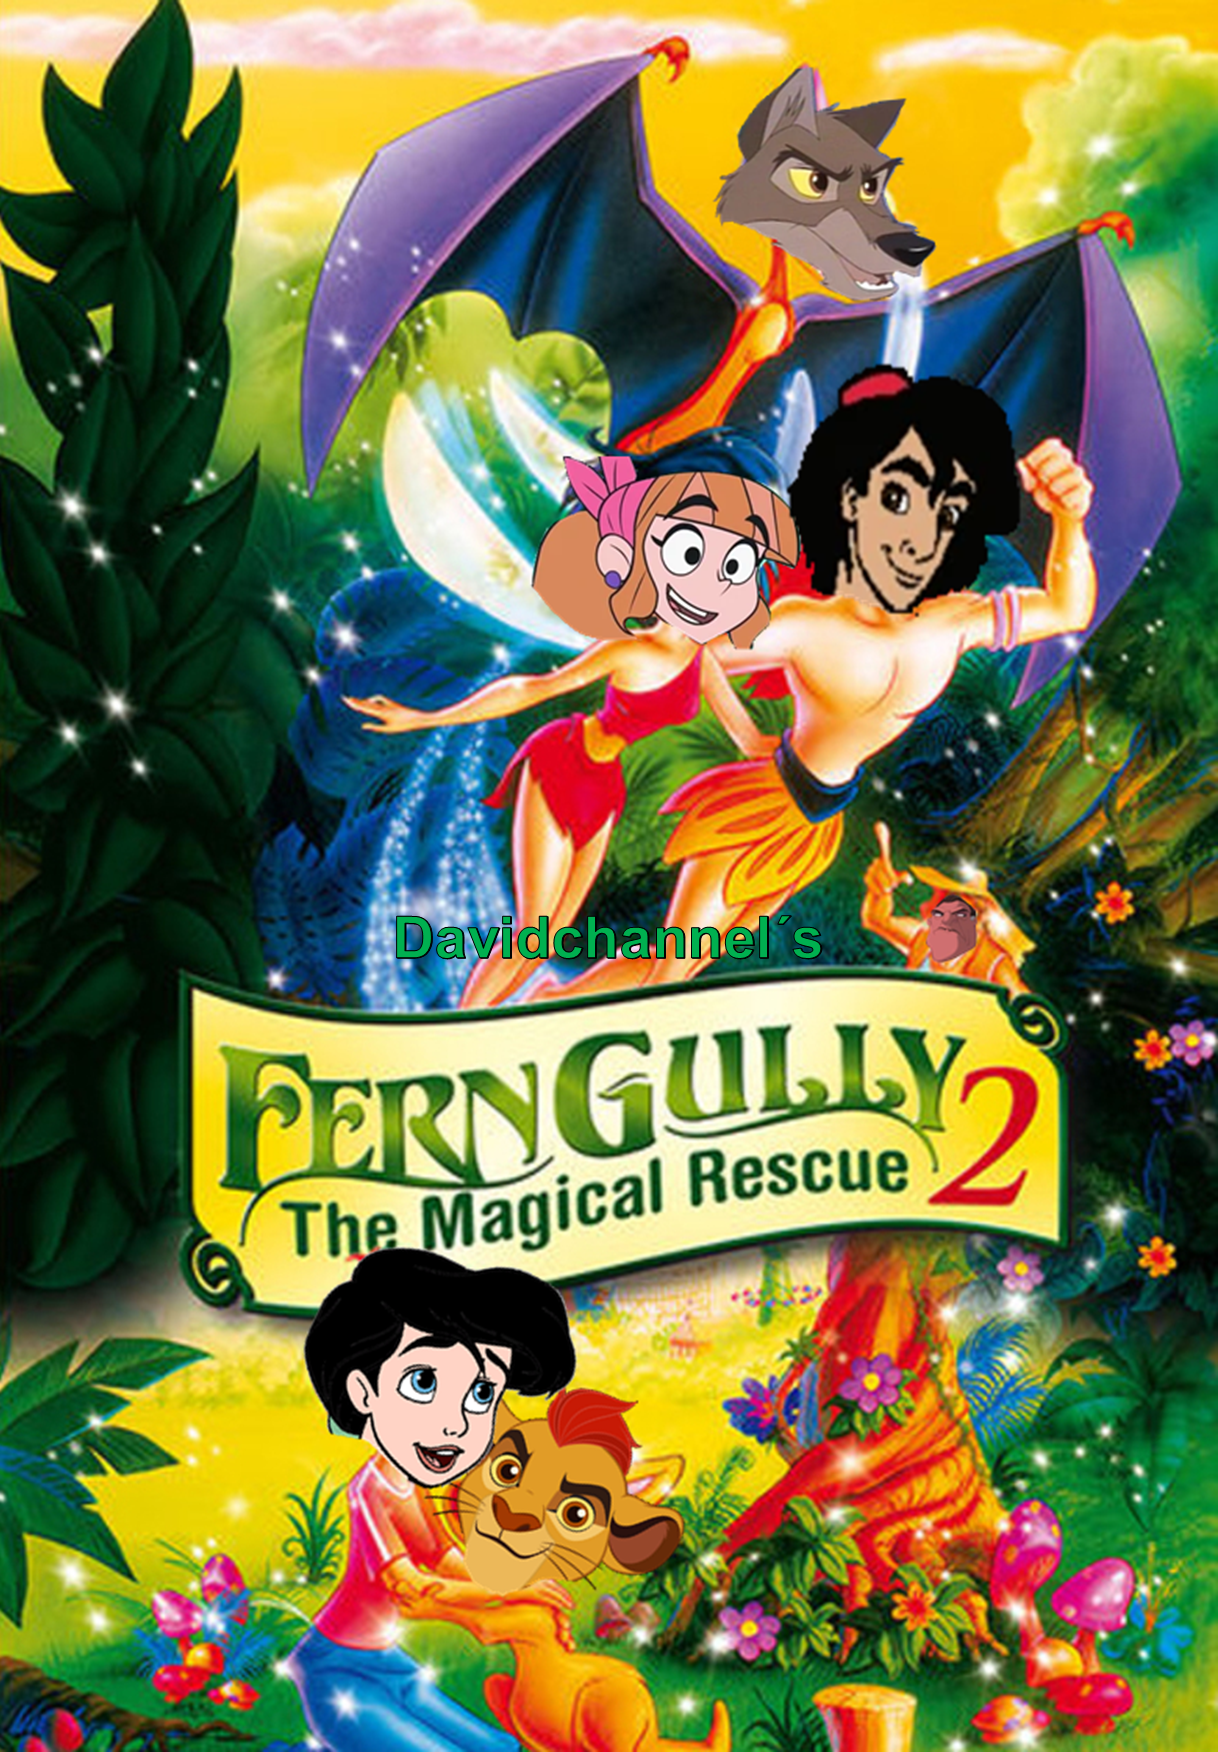 FernGully 2: The Magical Rescue (Davidchannel's Version)